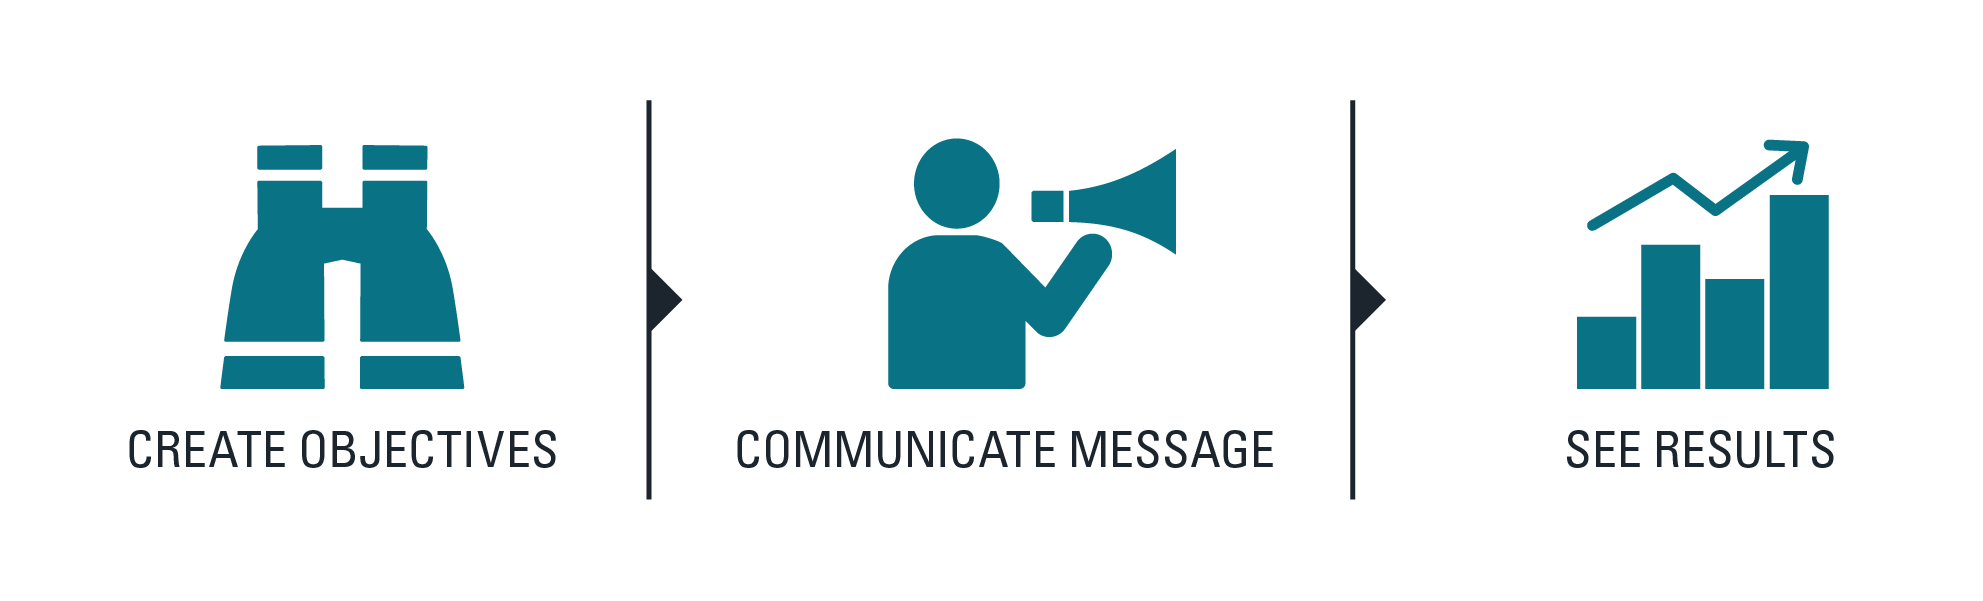 Creative objectives > communicate message > see results